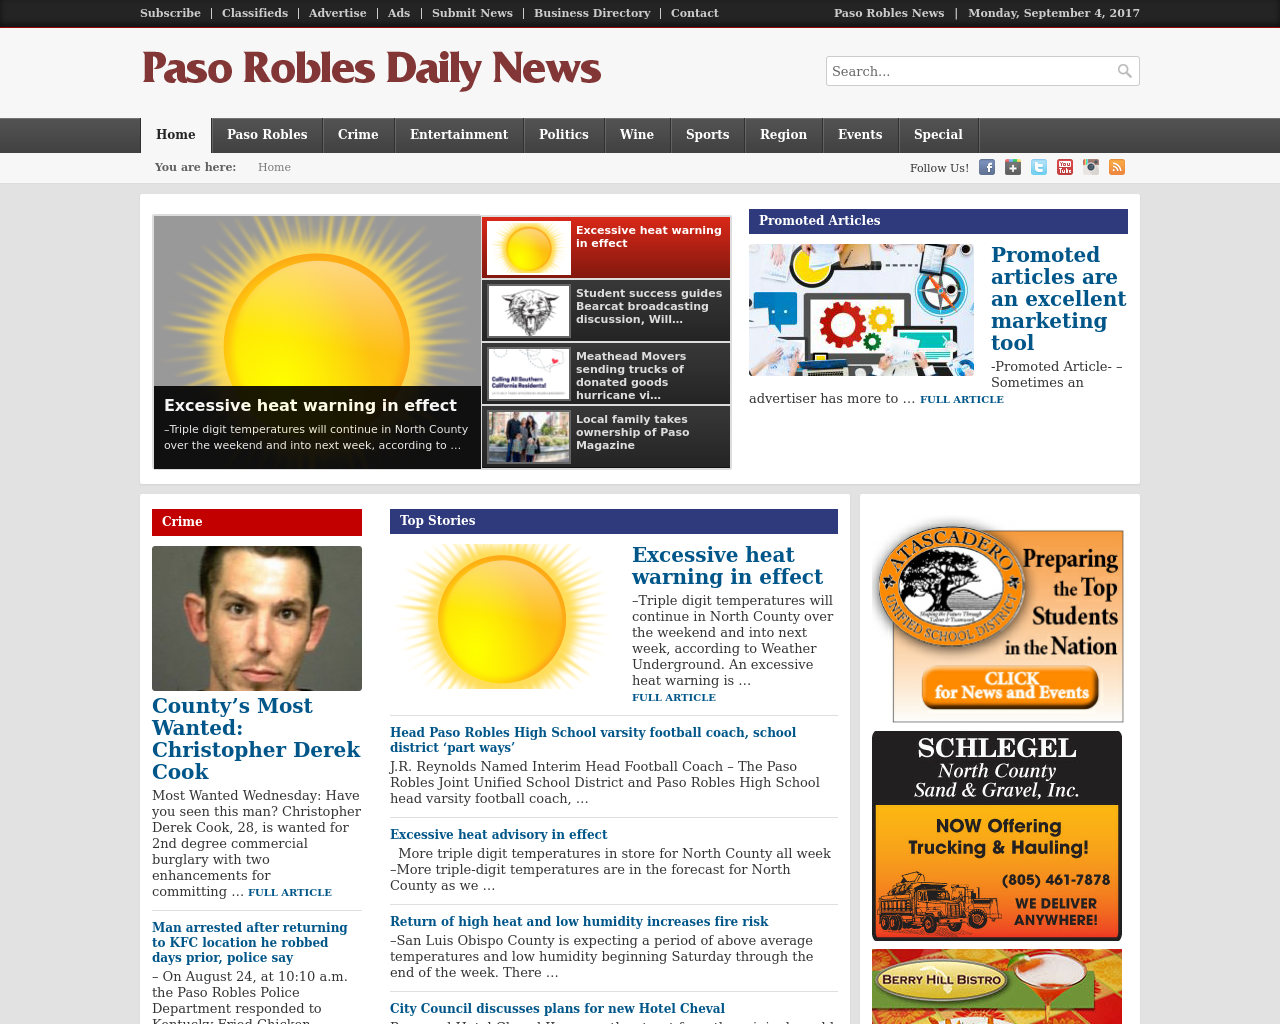 Paso-Robles-Daily-News-Advertising-Reviews-Pricing